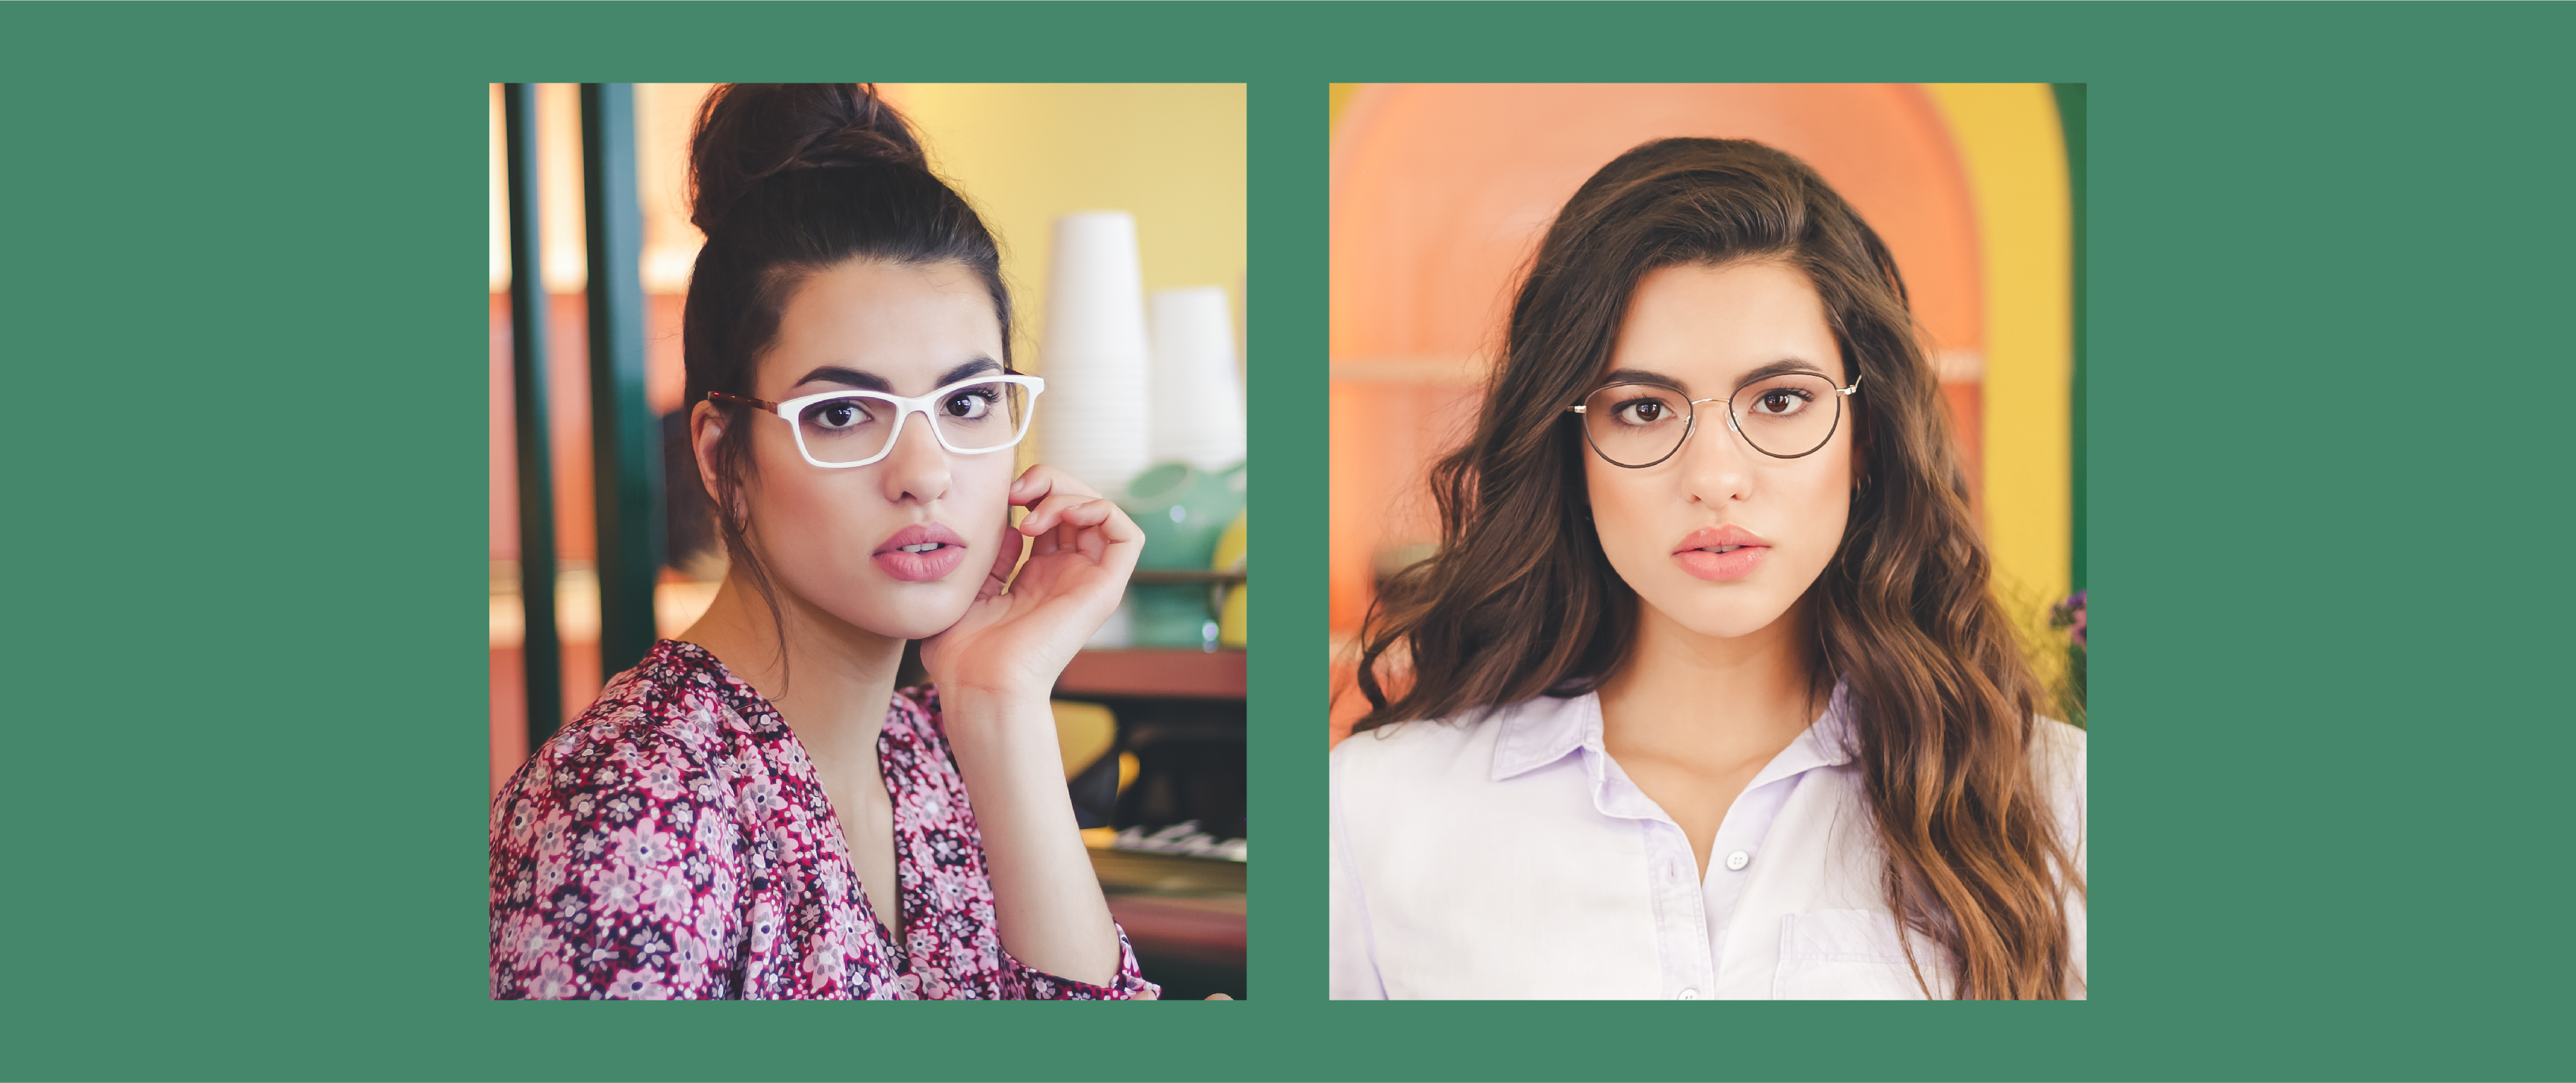 A woman is wearing Prodesign 5649 and another woman is wearing KLiiK K631 frames